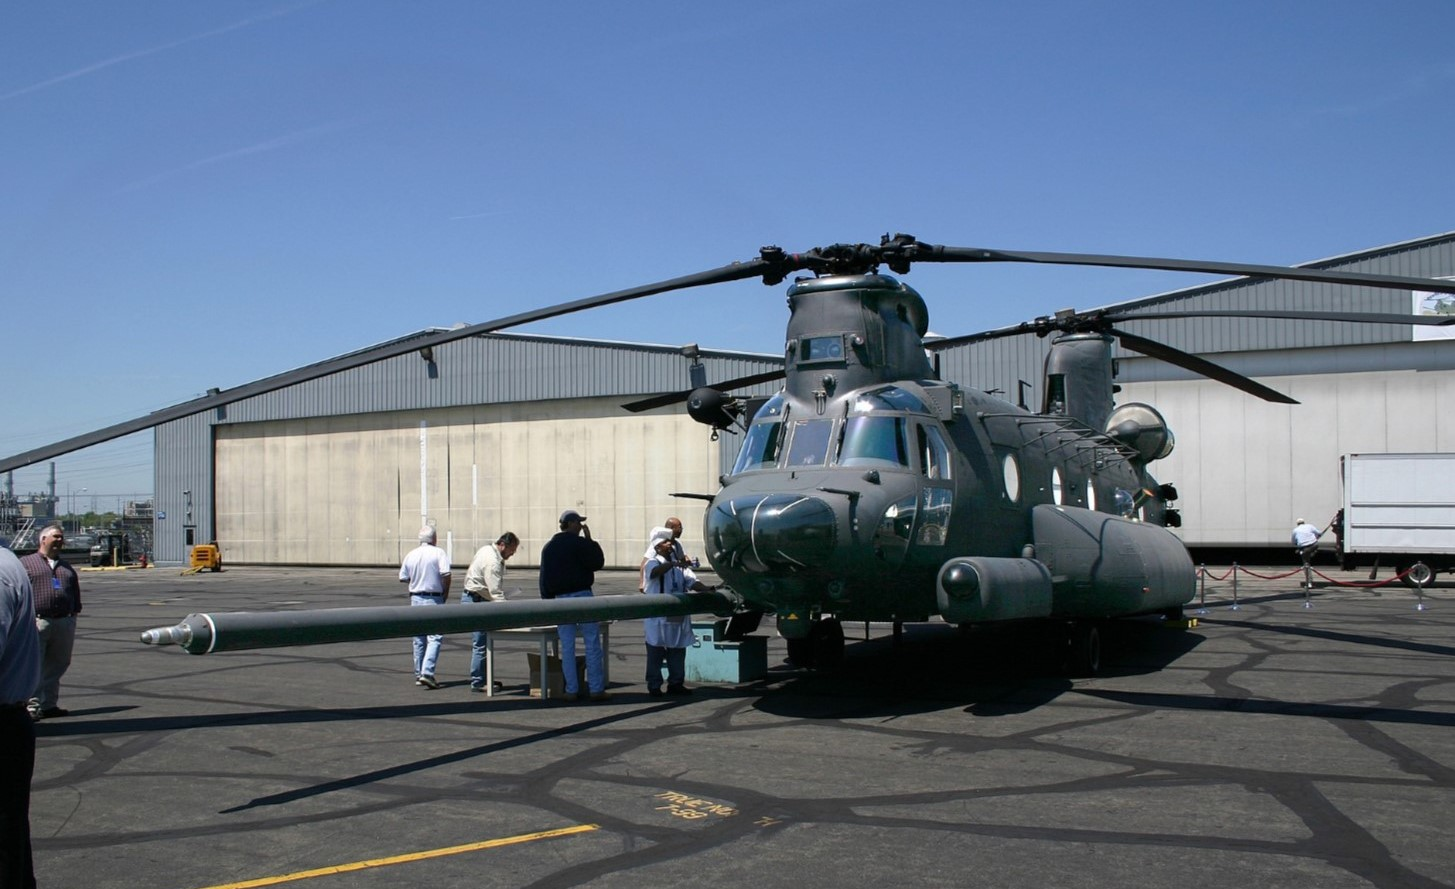 Boeing's Ridley Plant Workers to Benefit From New Chinook Helicopter Contract